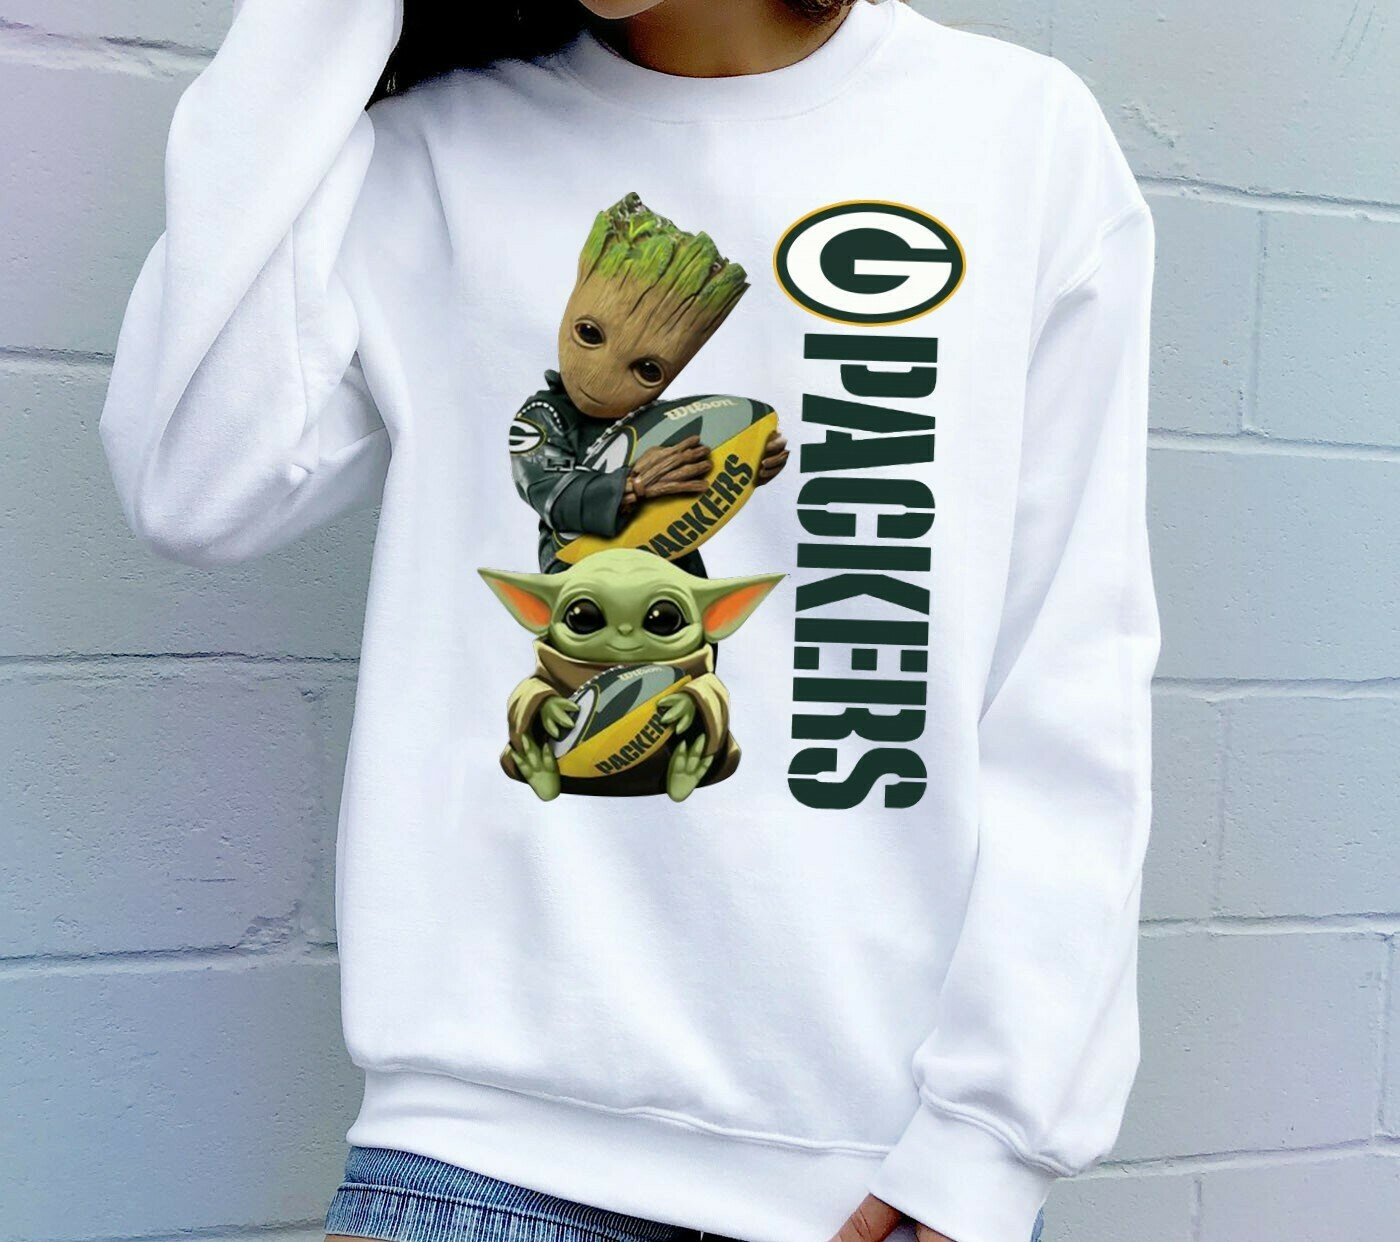 Baby Yoda and Baby Groot hug Green Bay Packers,Star Wars The Mandalorian The Child First Memories Floating NFL Football Team Fan  T-Shirt Hoodie Sweatshirt Sweater Tee Kids Youth Gifts Jolly Family